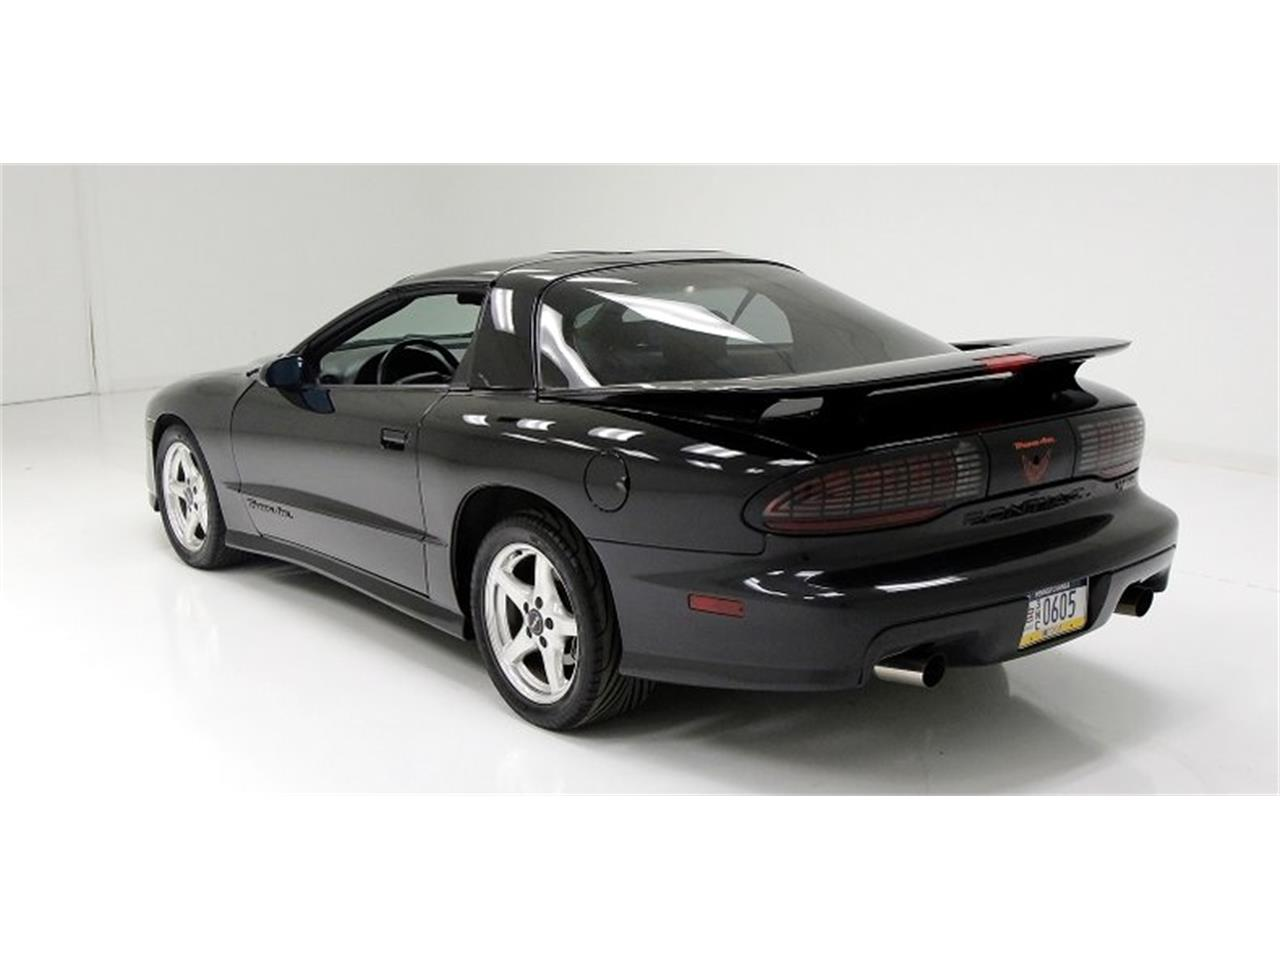 Large Picture of 1997 Pontiac Firebird Trans Am located in Pennsylvania Offered by Classic Auto Mall - QCUN